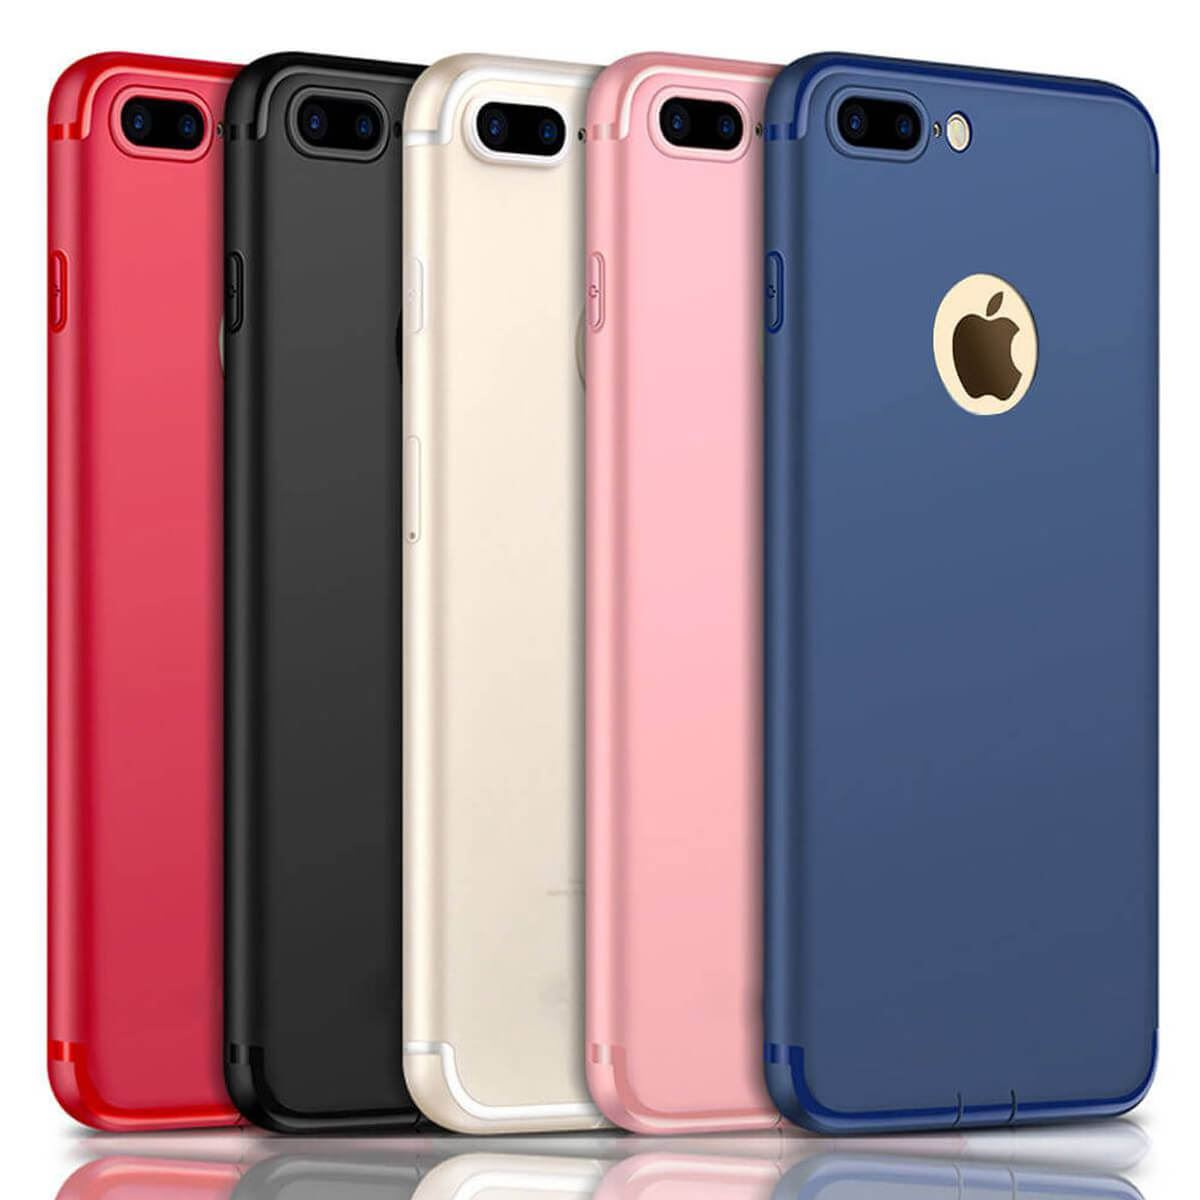 Ultra-Thin-Case-Apple-iPhone-10-8-7-Plus-6-5-Luxury-Slim-Silicone-TPU-Soft-Cover thumbnail 9